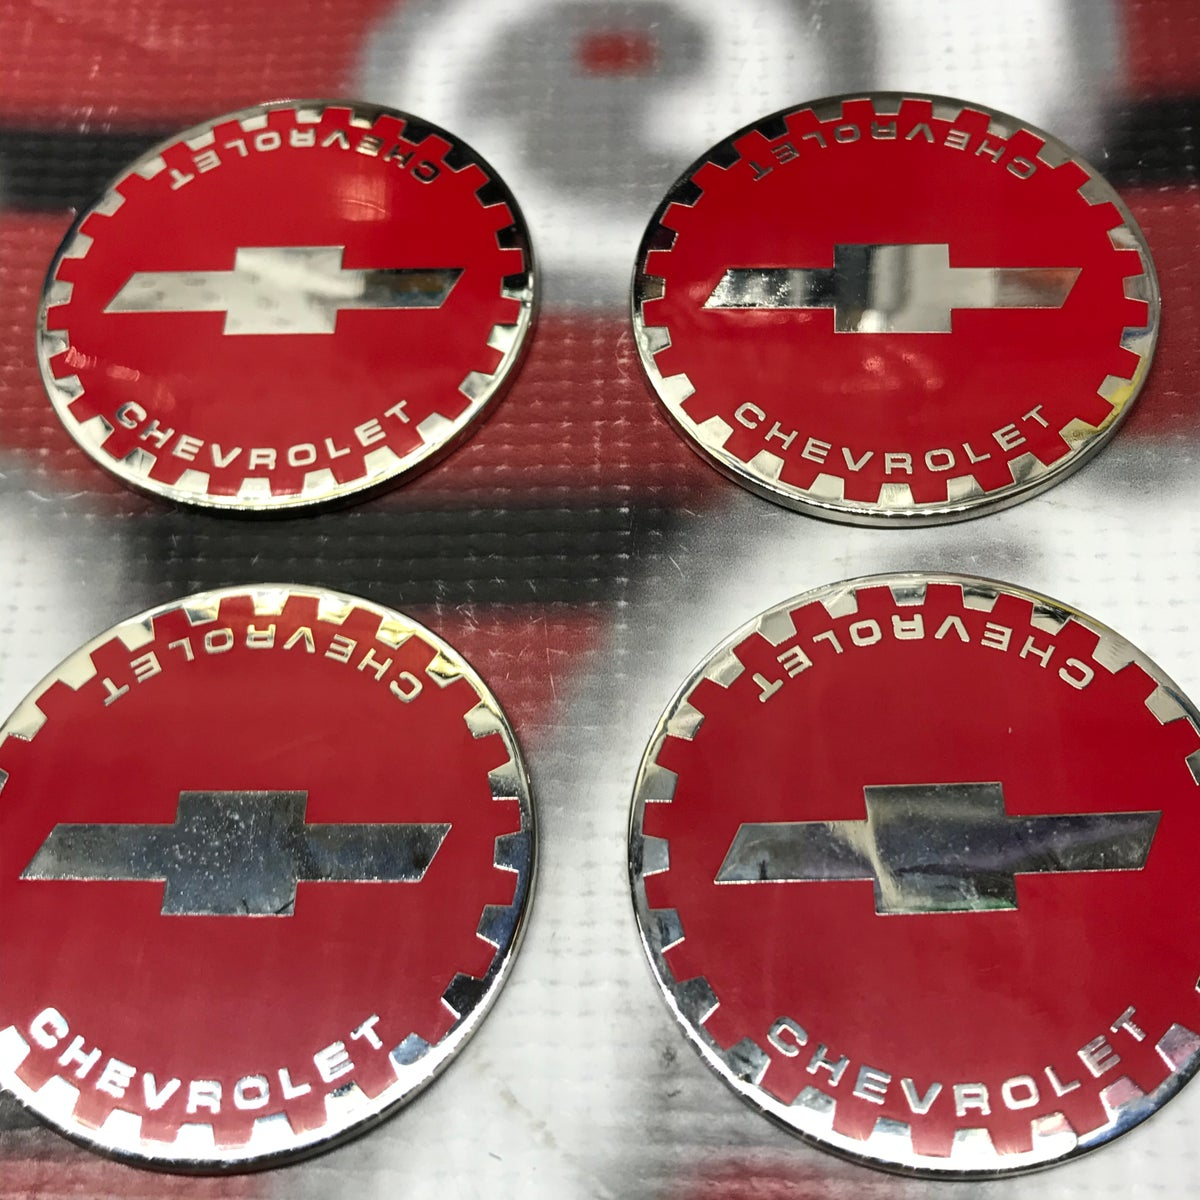 Image of Chevrolet chips set